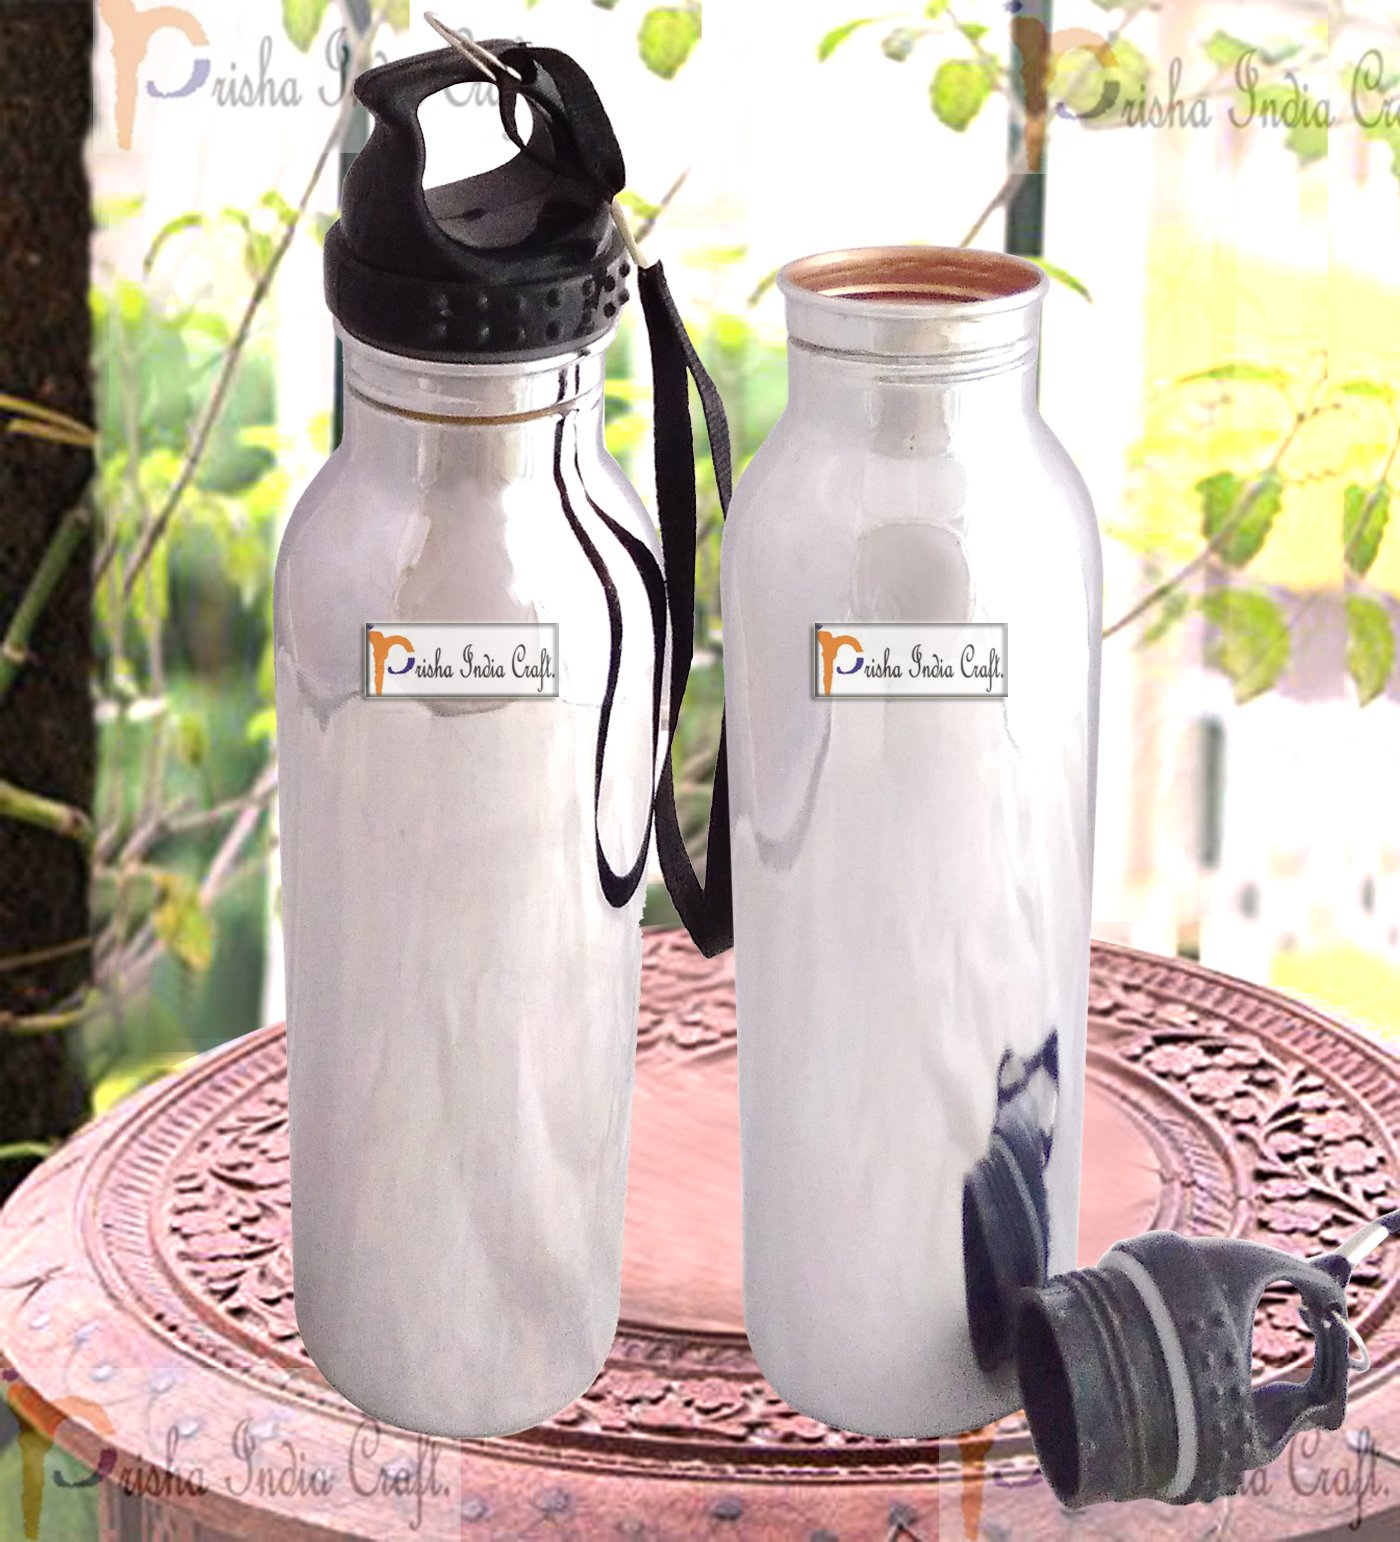 Prisha India Craft Pure Copper Water Bottle Outside Steel with Plastic Loop Cap Handmade Joint Free & Leak Proof Water Bottles | Capacity 900 ML | Set of 2